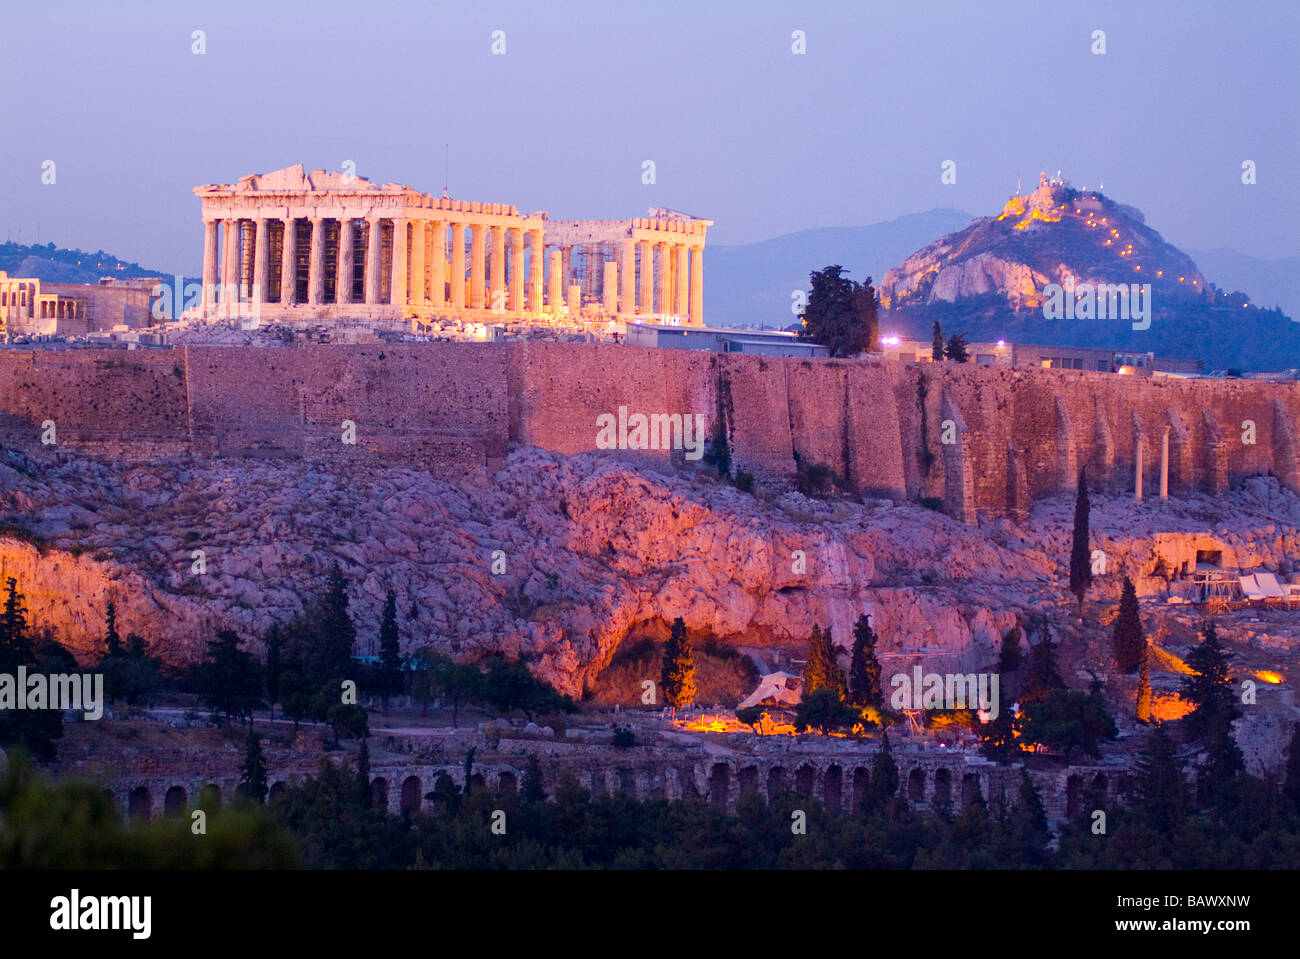 The Parthenon Acropolis Athens Greece - Stock Image